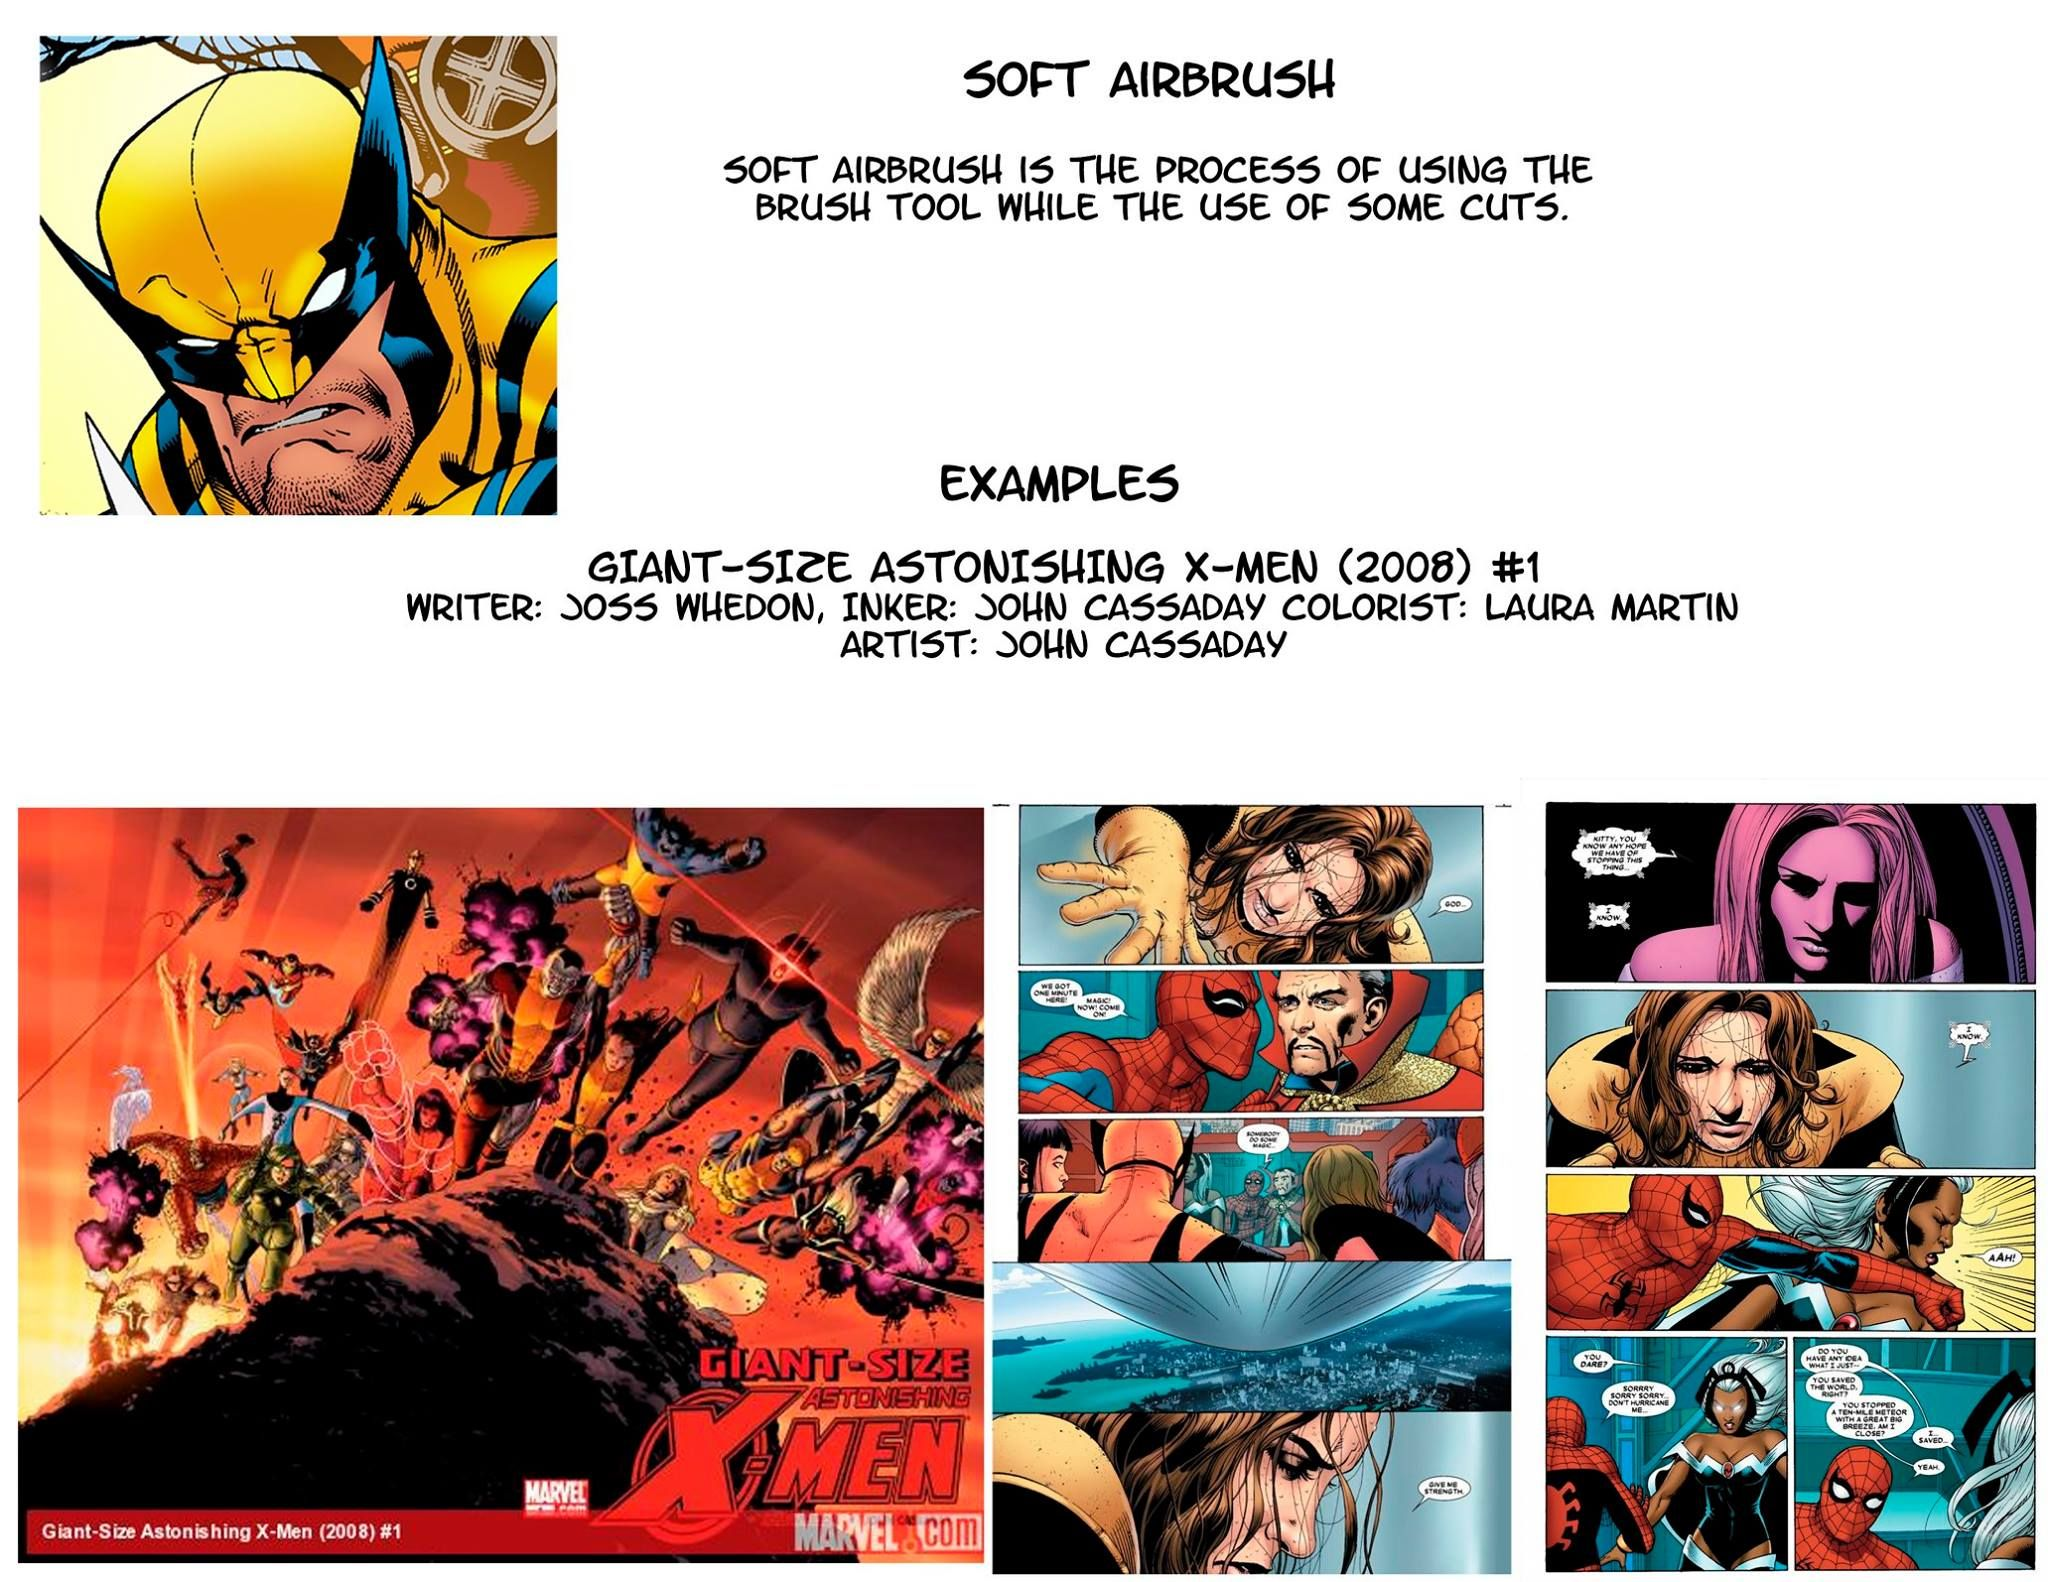 Comic Coloring Styles Softairbrush Jasen Smith Colourist Digital Painting My Pictures